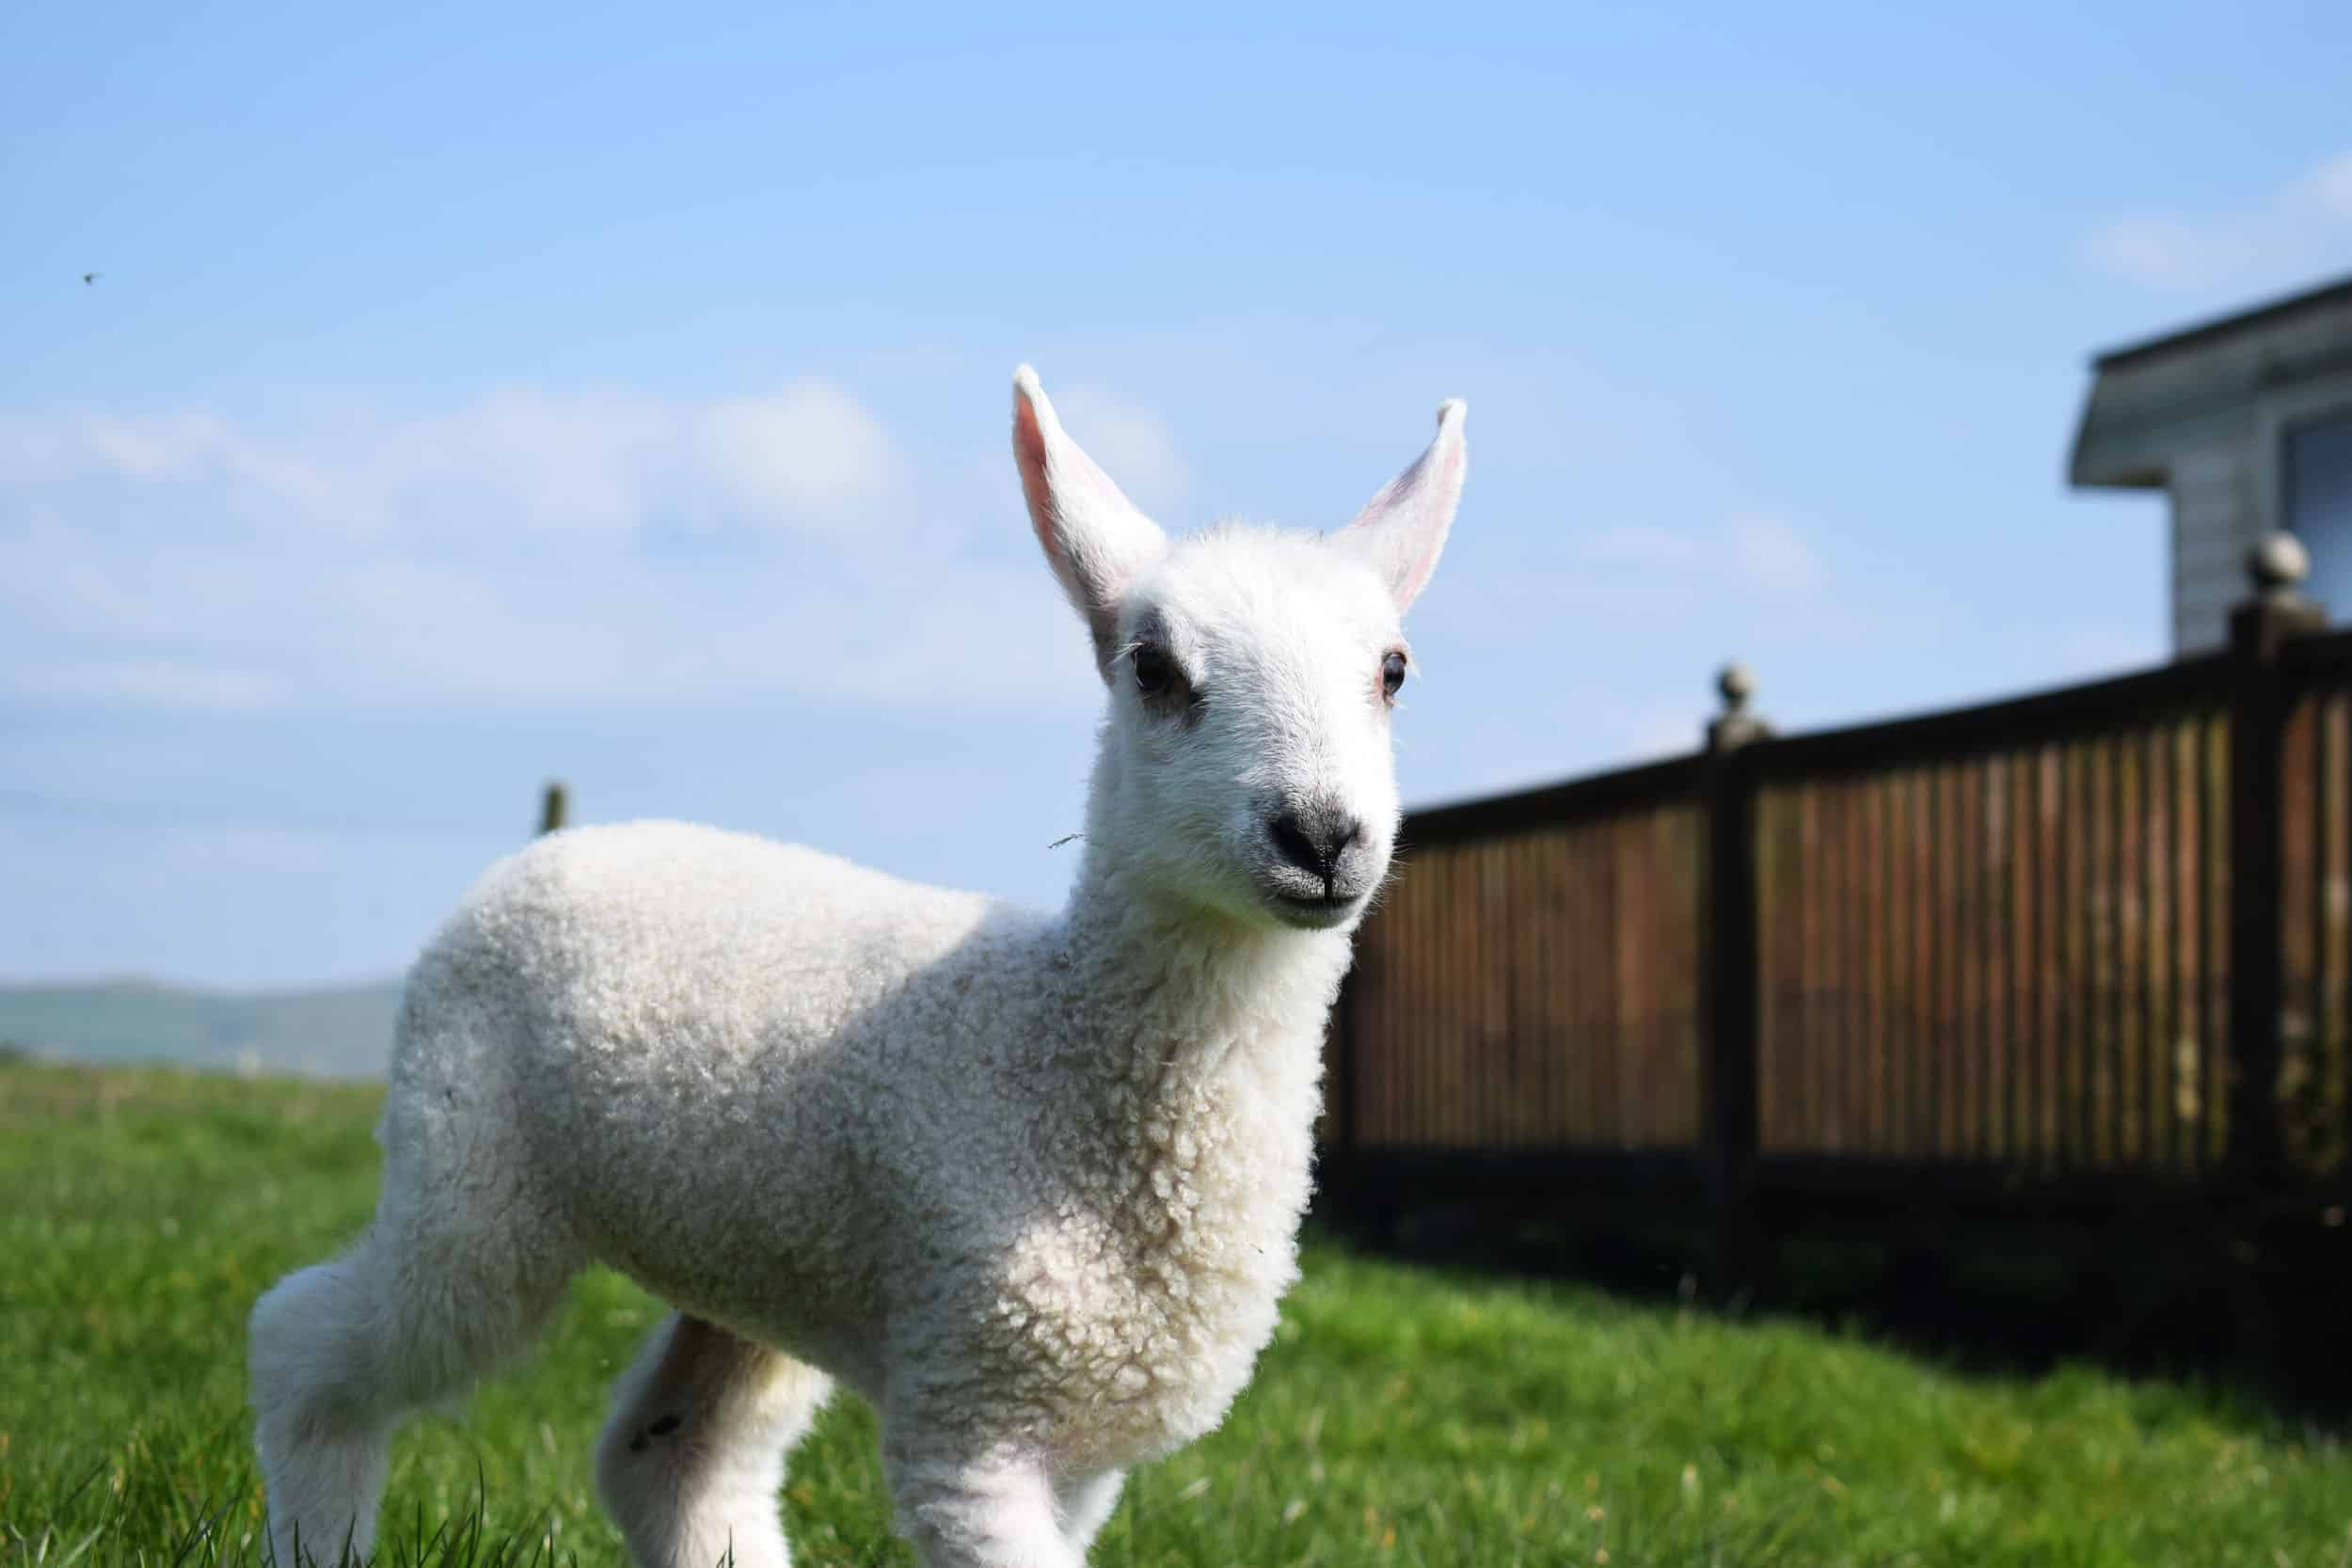 Lily farm wales bfl blueface leicester sheep ewe lamb pet bottle baby lamb